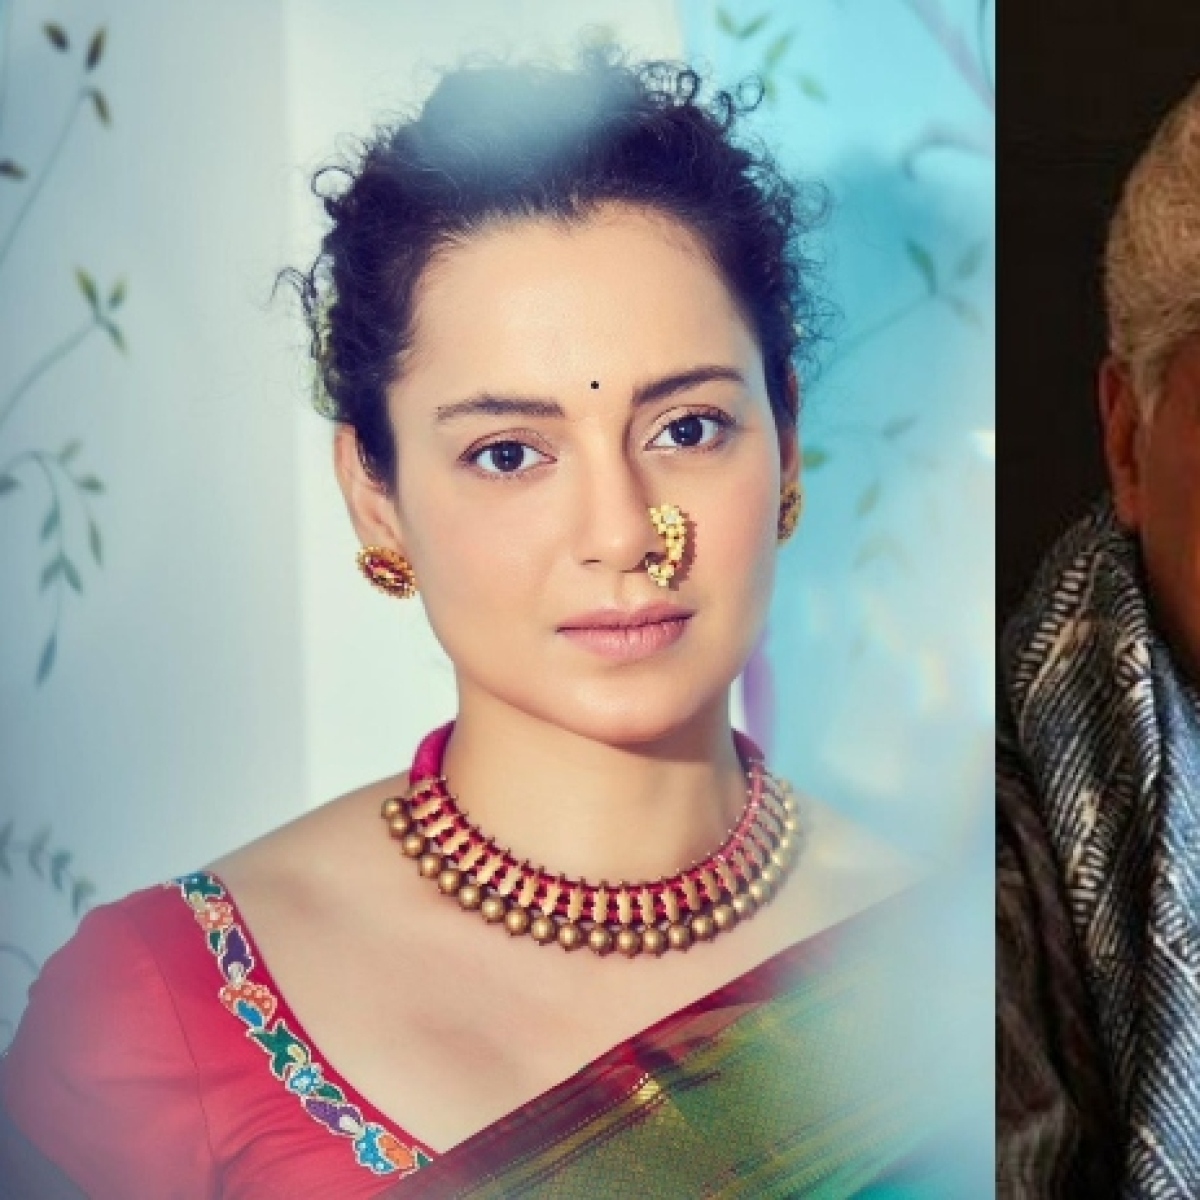 Mumbai: Bailable warrant issued against Kangana Ranaut in connection with Javed Akhtar's defamation complaint